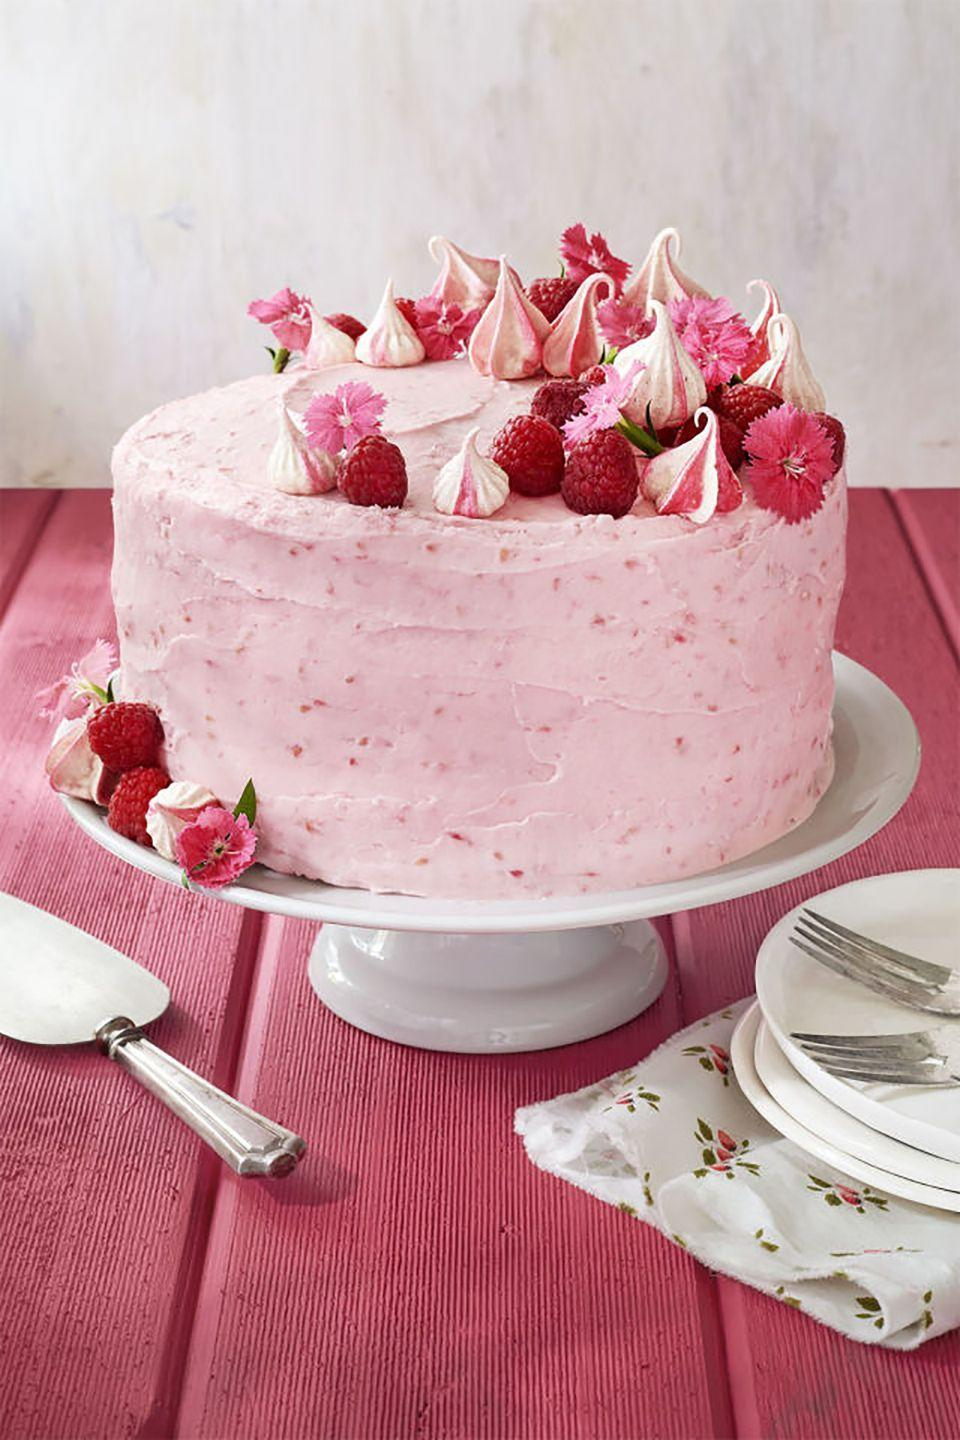 "<p>Mom will be amazed by this glorious red velvet cake, which is covered in raspberry cream cheese and topped off with meringue kisses, edible flowers, and raspberries. </p><p><strong><a href=""https://www.countryliving.com/food-drinks/recipes/a41986/raspberry-pink-velvet-cake-recipe/"" rel=""nofollow noopener"" target=""_blank"" data-ylk=""slk:Get the recipe"" class=""link rapid-noclick-resp"">Get the recipe</a>.</strong></p><p><a class=""link rapid-noclick-resp"" href=""https://go.redirectingat.com?id=74968X1596630&url=https%3A%2F%2Fwww.williams-sonoma.com%2Fproducts%2Fkitchenaid-artisan-mini-with-flex-edge-beater%2F&sref=https%3A%2F%2Fwww.countryliving.com%2Ffood-drinks%2Fg3185%2Fmothers-day-cakes%2F"" rel=""nofollow noopener"" target=""_blank"" data-ylk=""slk:SHOP STAND MIXERS"">SHOP STAND MIXERS</a></p>"